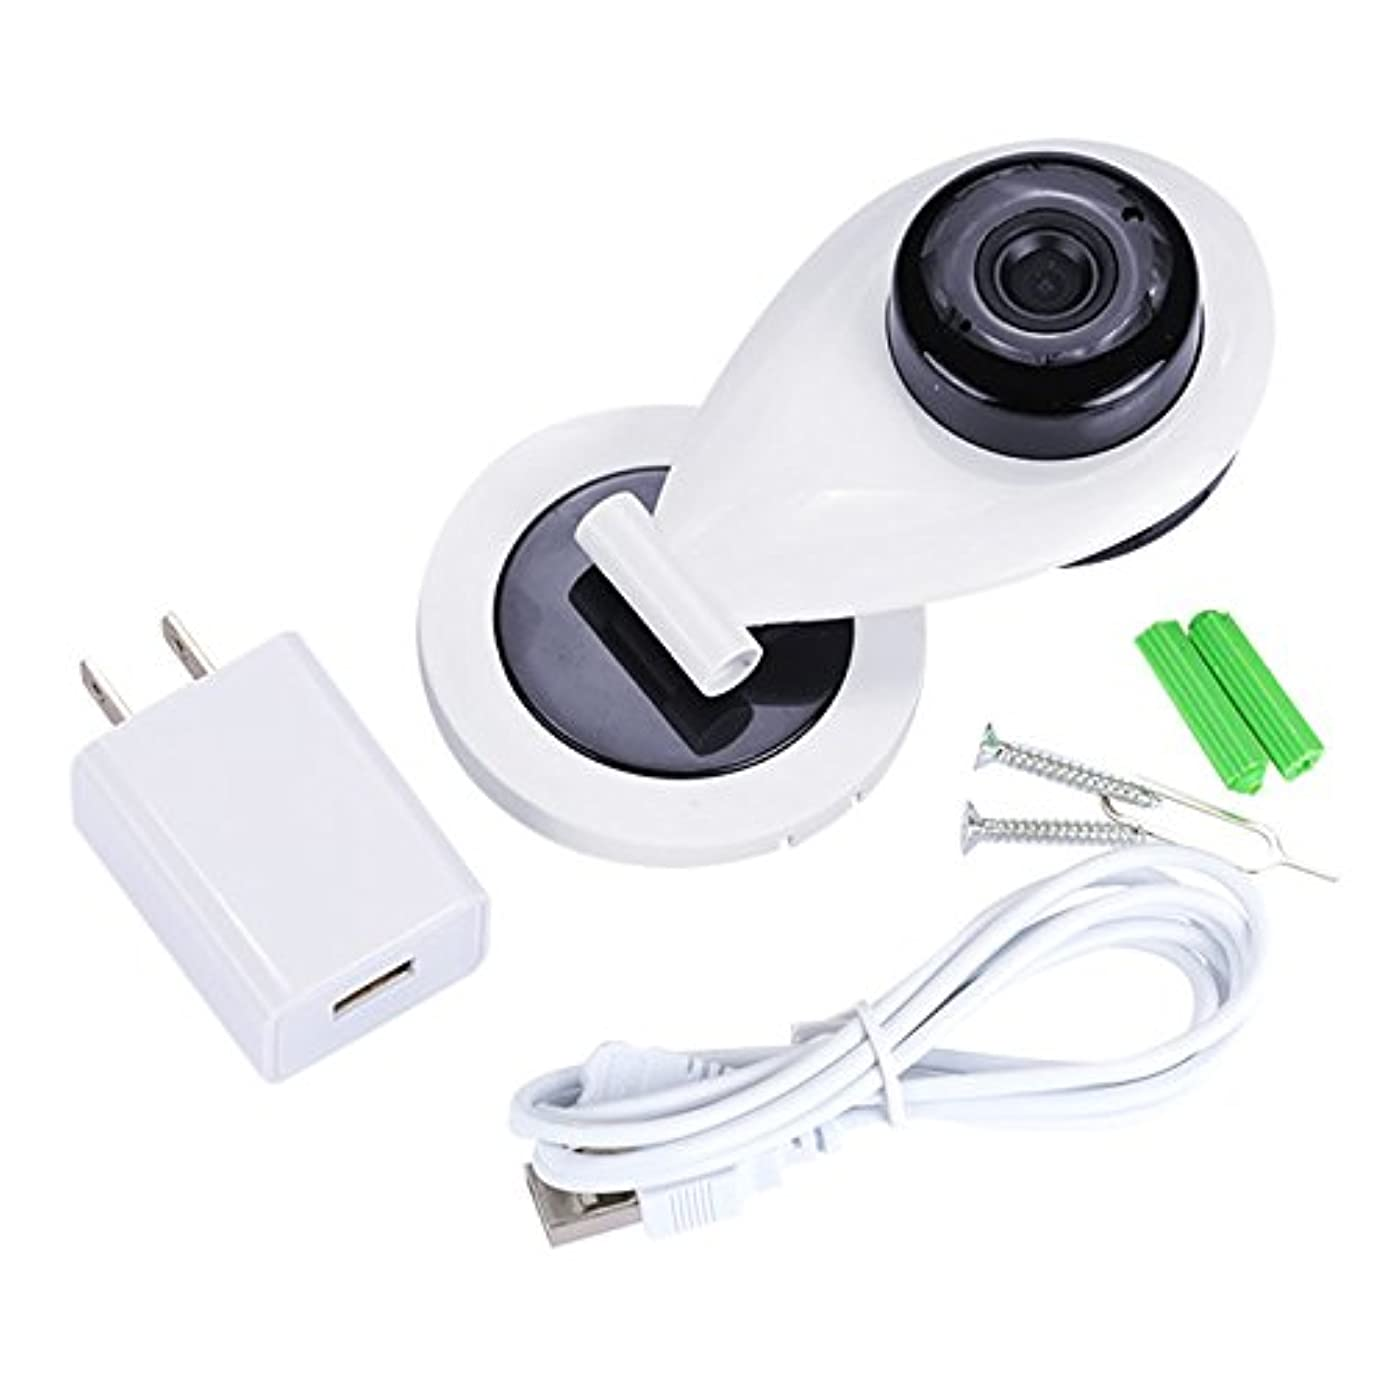 Wifi Hd Interpolation 1080P Mobile Phone Remote Network Monitoring Monitor Canera with Night Vision